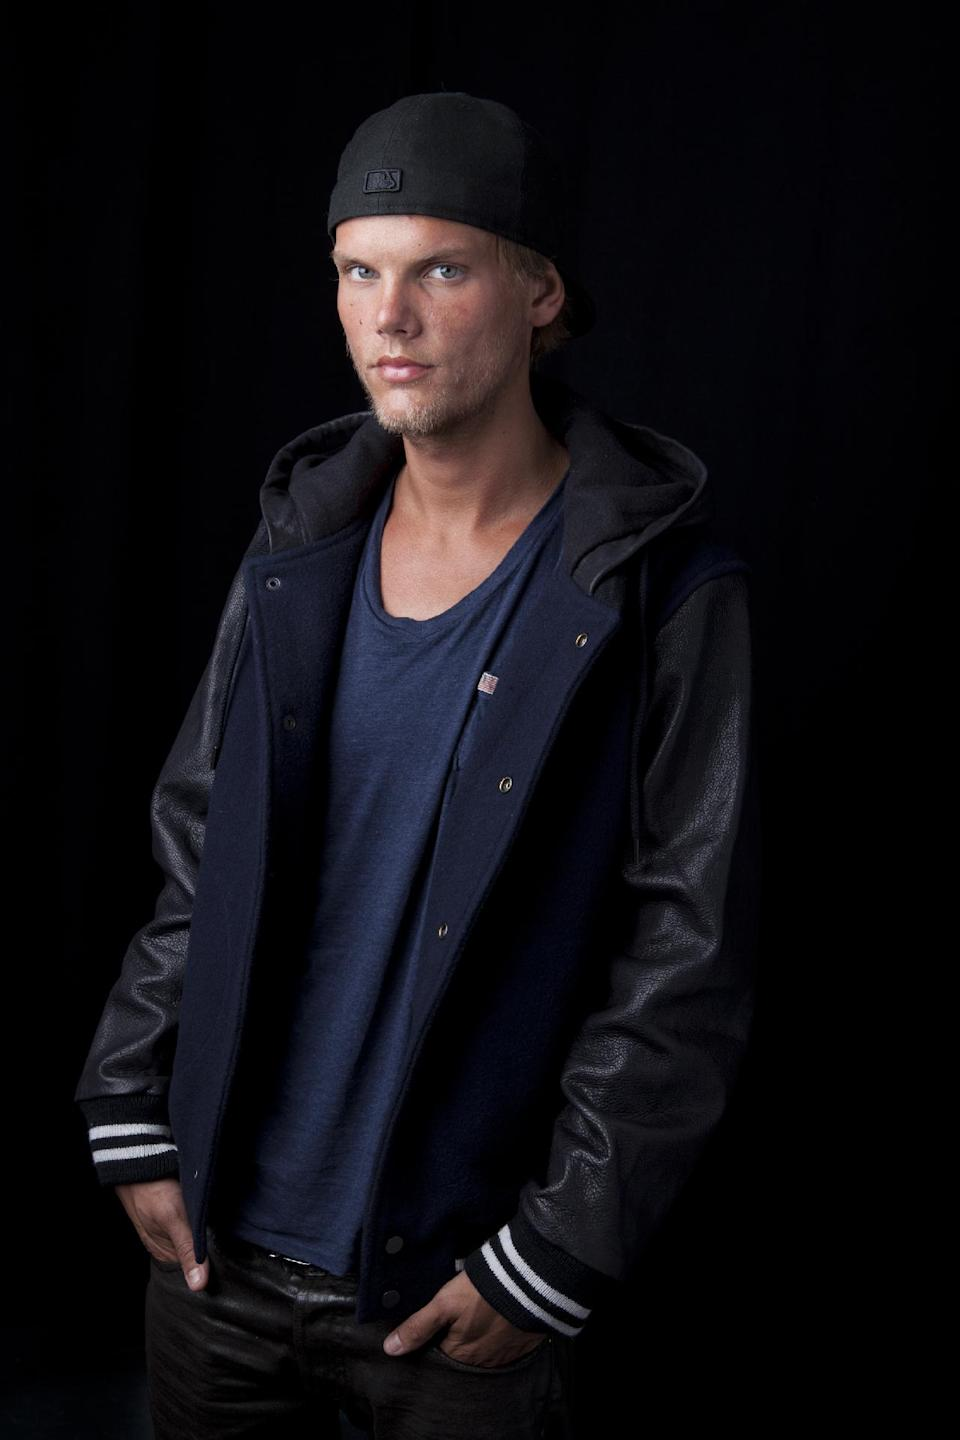 Swedish DJ, remixer and record producer Avicii poses for a portrait, on Friday, August 30, 2013 in New York. (Photo by Amy Sussman/Invision/AP)